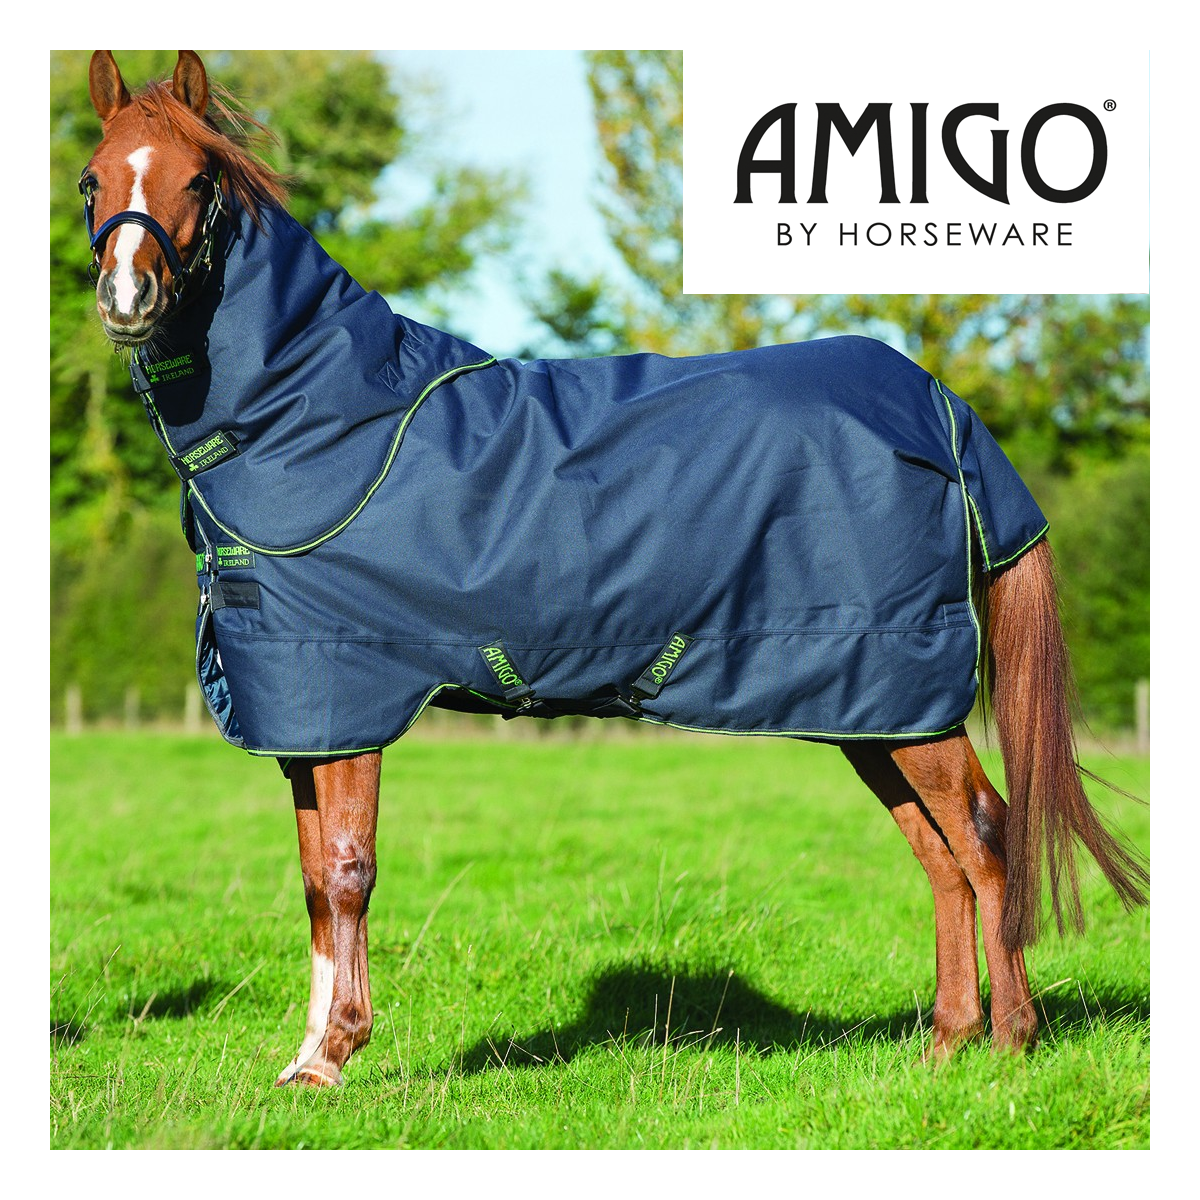 Horseware Amigo Pony Bravo 12 Plus Turnout 250g Mediumweight Turnout Plus Rug with Detachable a23ea5